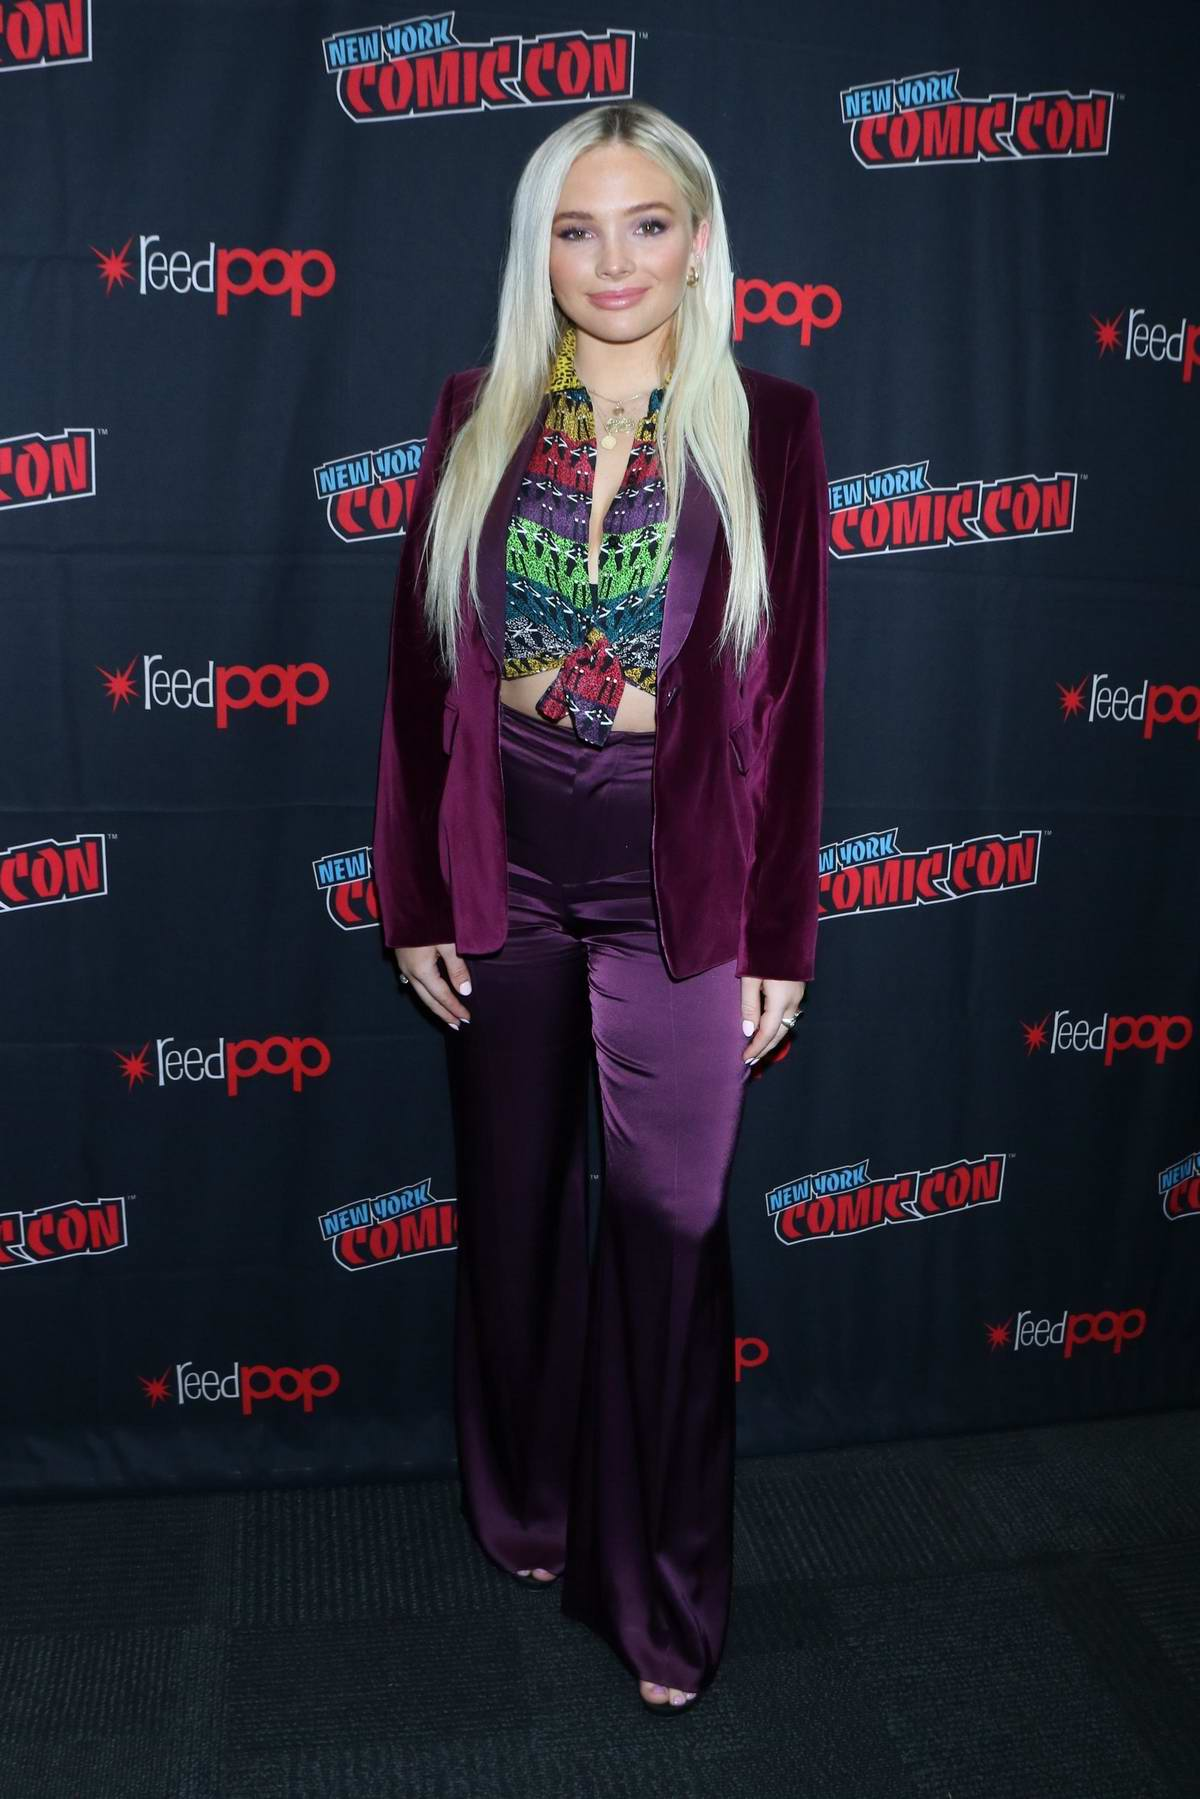 Natalie Alyn Lind attends the press room for 'Tell Me a Story' during New York Comic Con 2019 in New York City